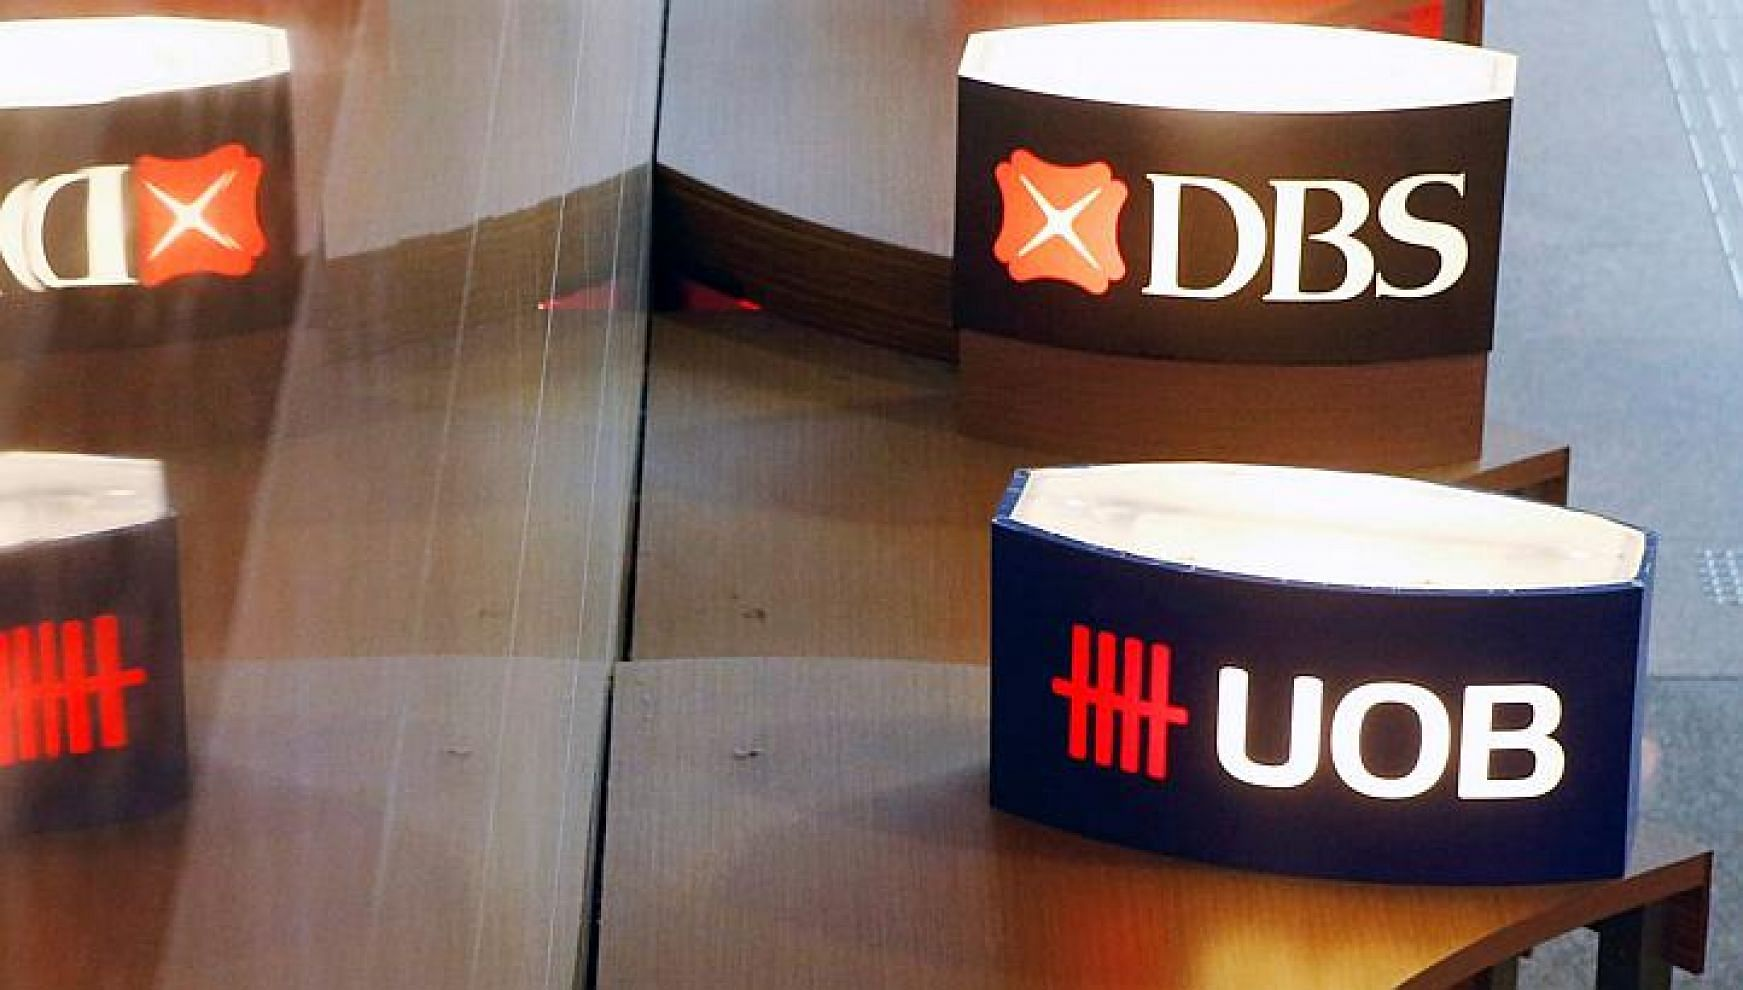 Home loans war between dbs and uob results in competitive for Home decor 91711